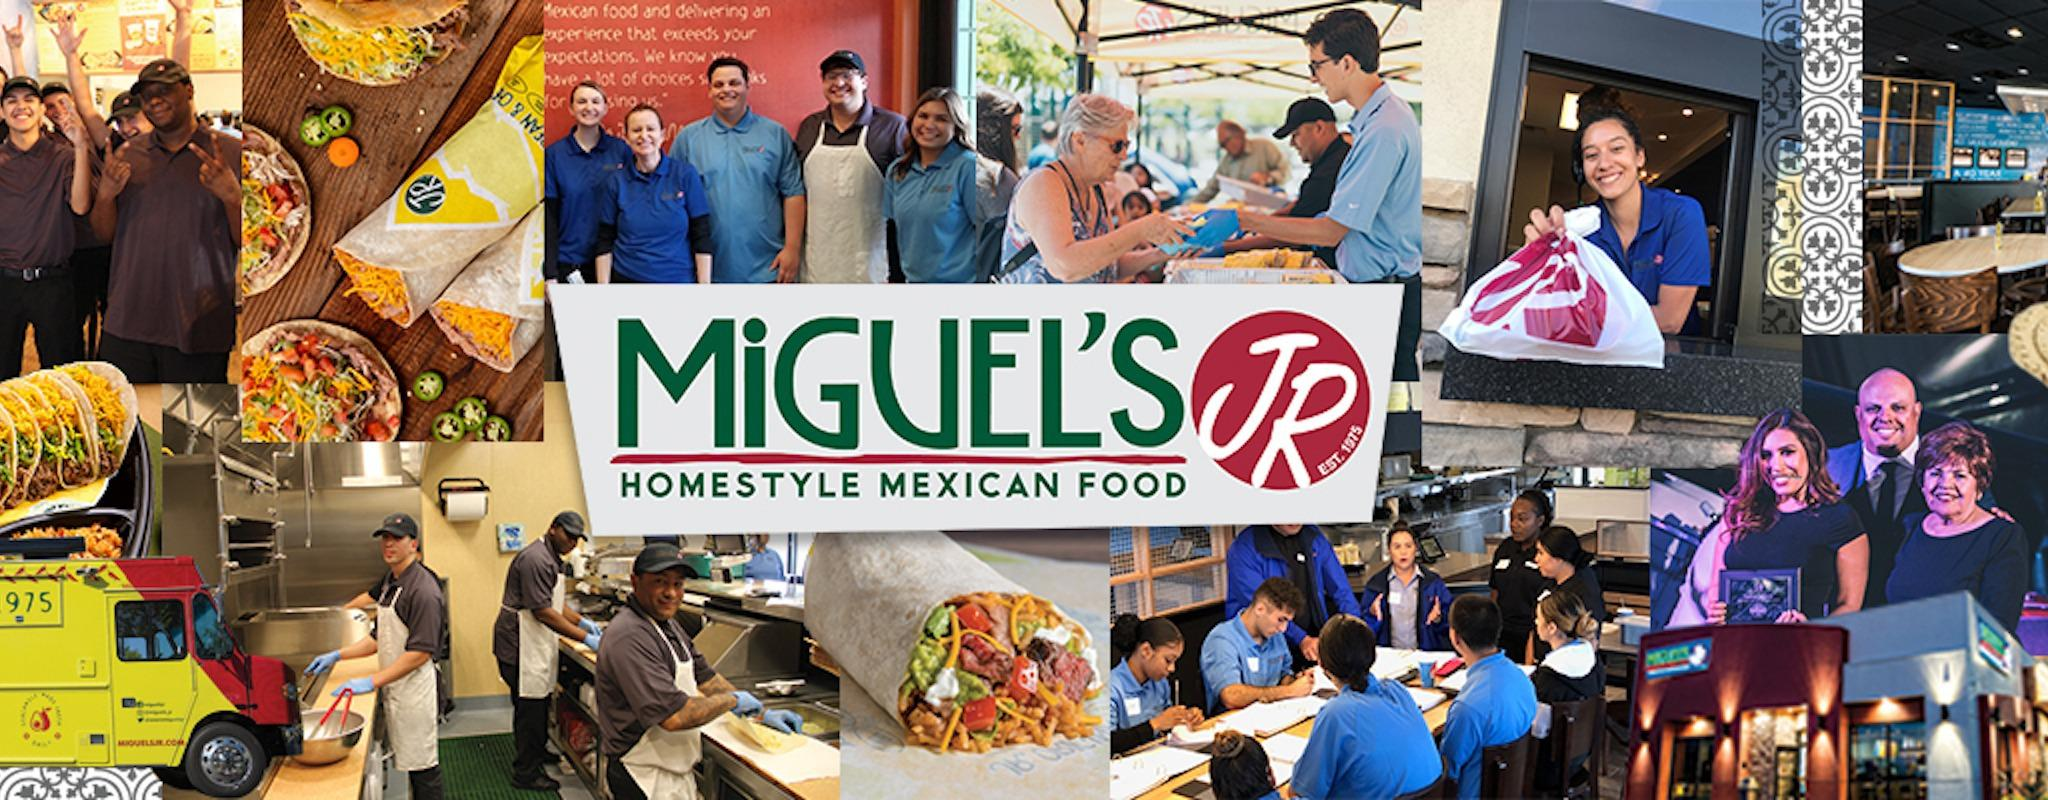 Miguel's Jr. - 19 Brand Cover